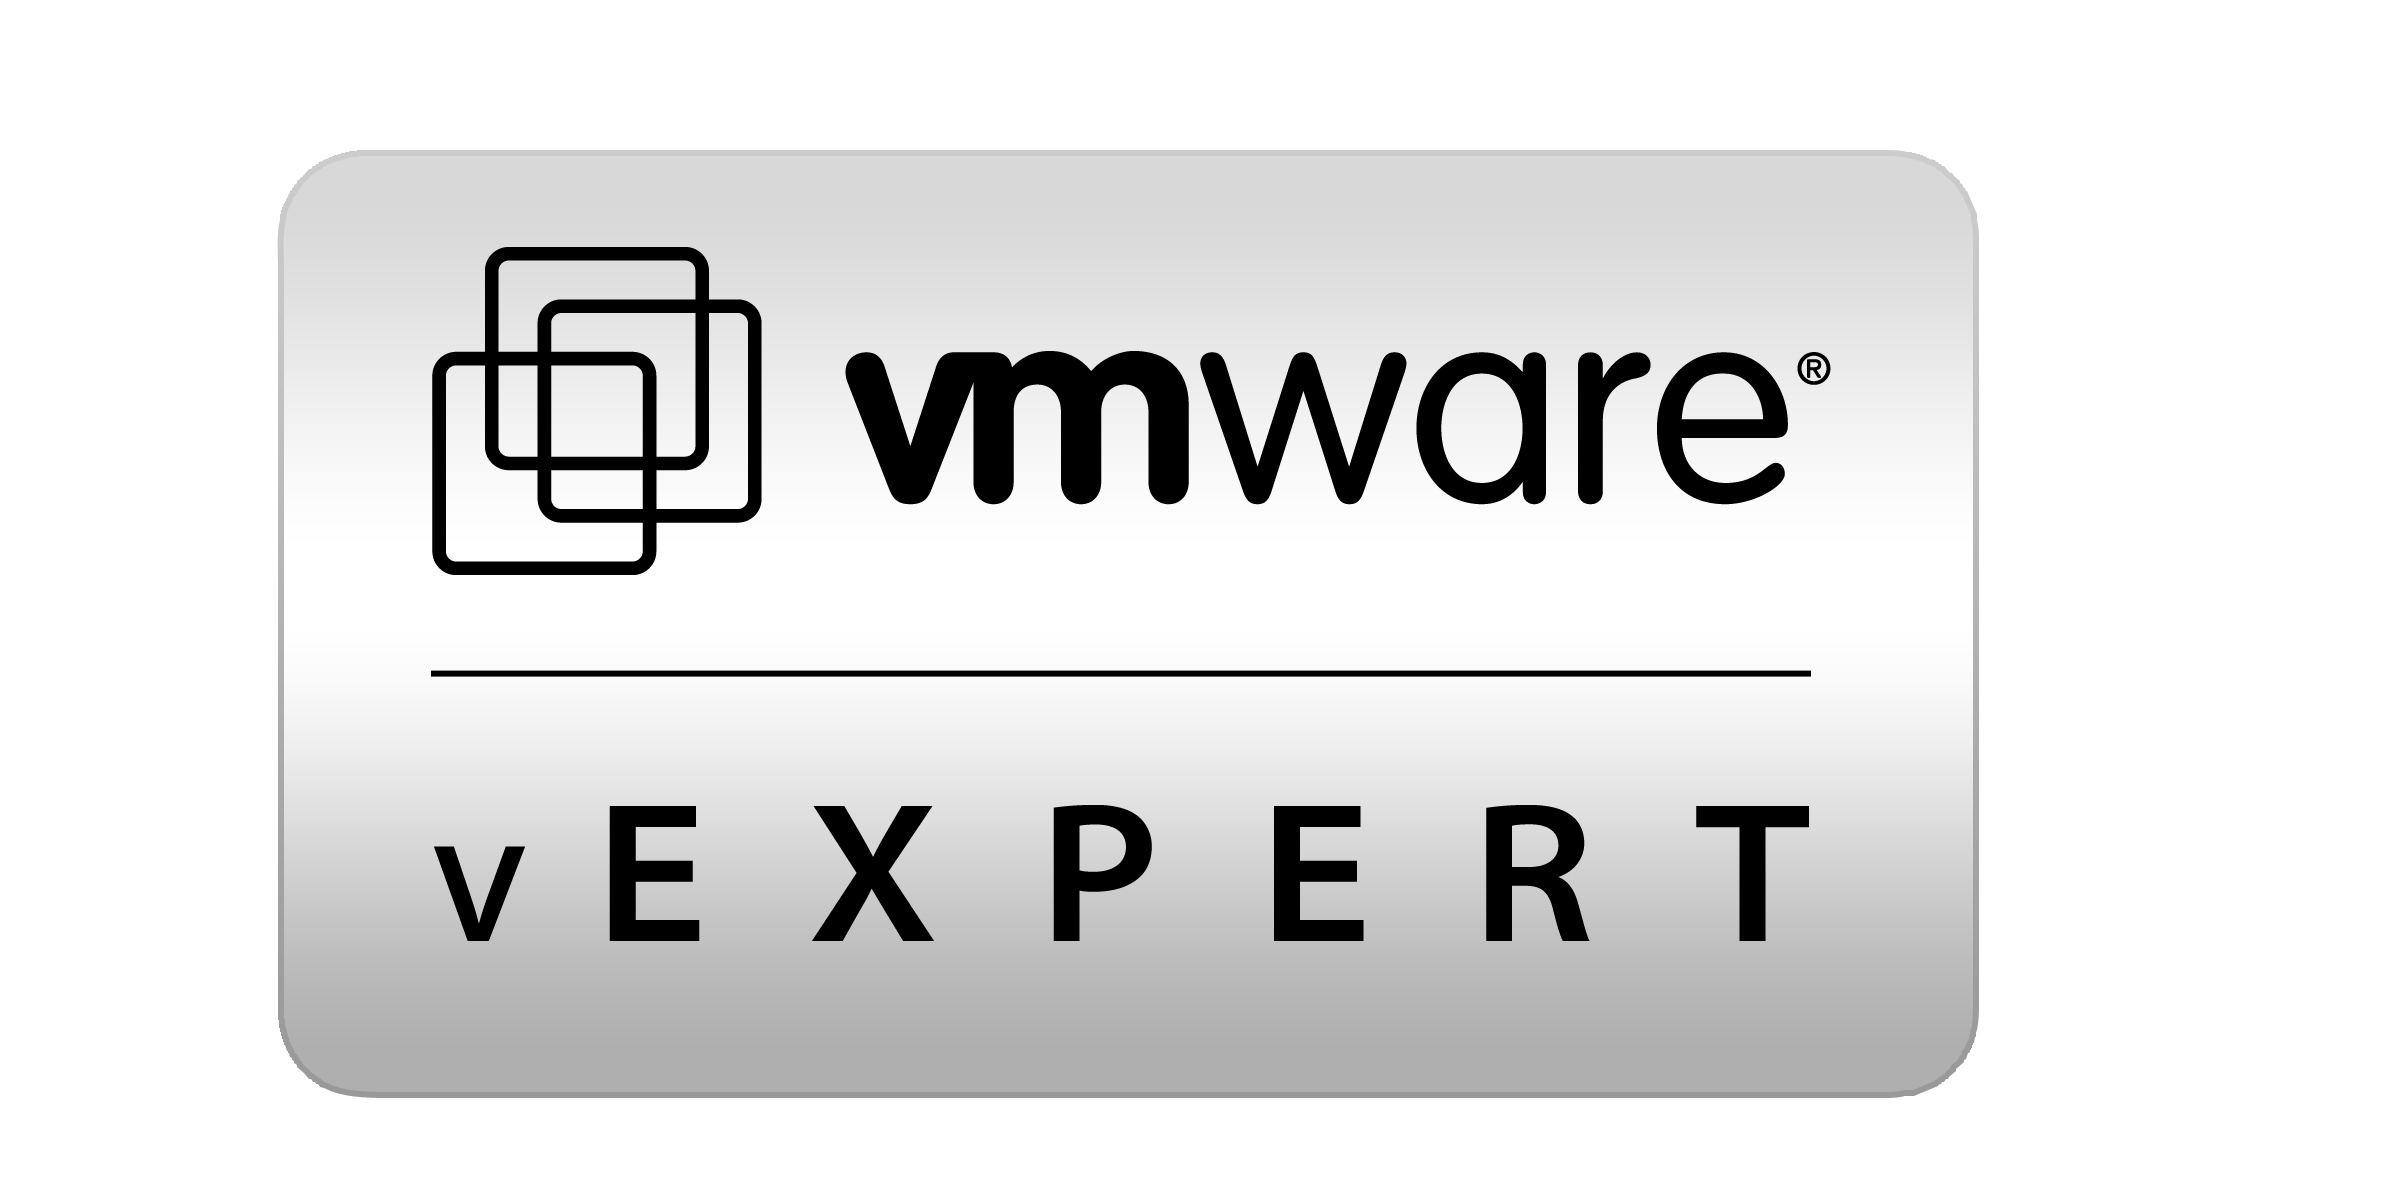 vmware vexpert 2012 award  u2013 vniklas cloud and automation blog